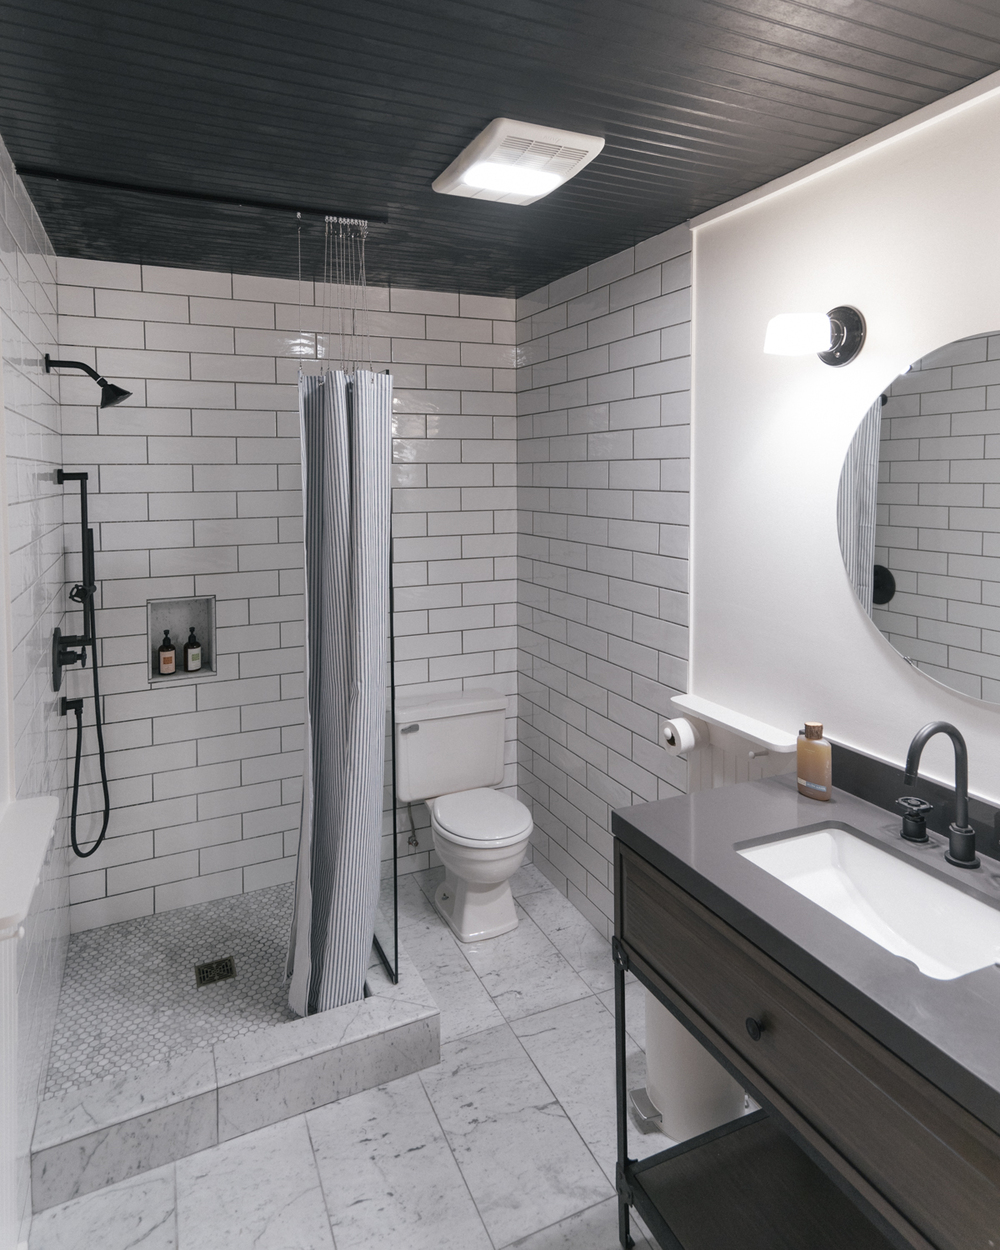 The luxurious bathroom shared exclusively by rooms 3a & 3b, featuring beautiful marble floors and stocked with Juniper Ridge trail soap